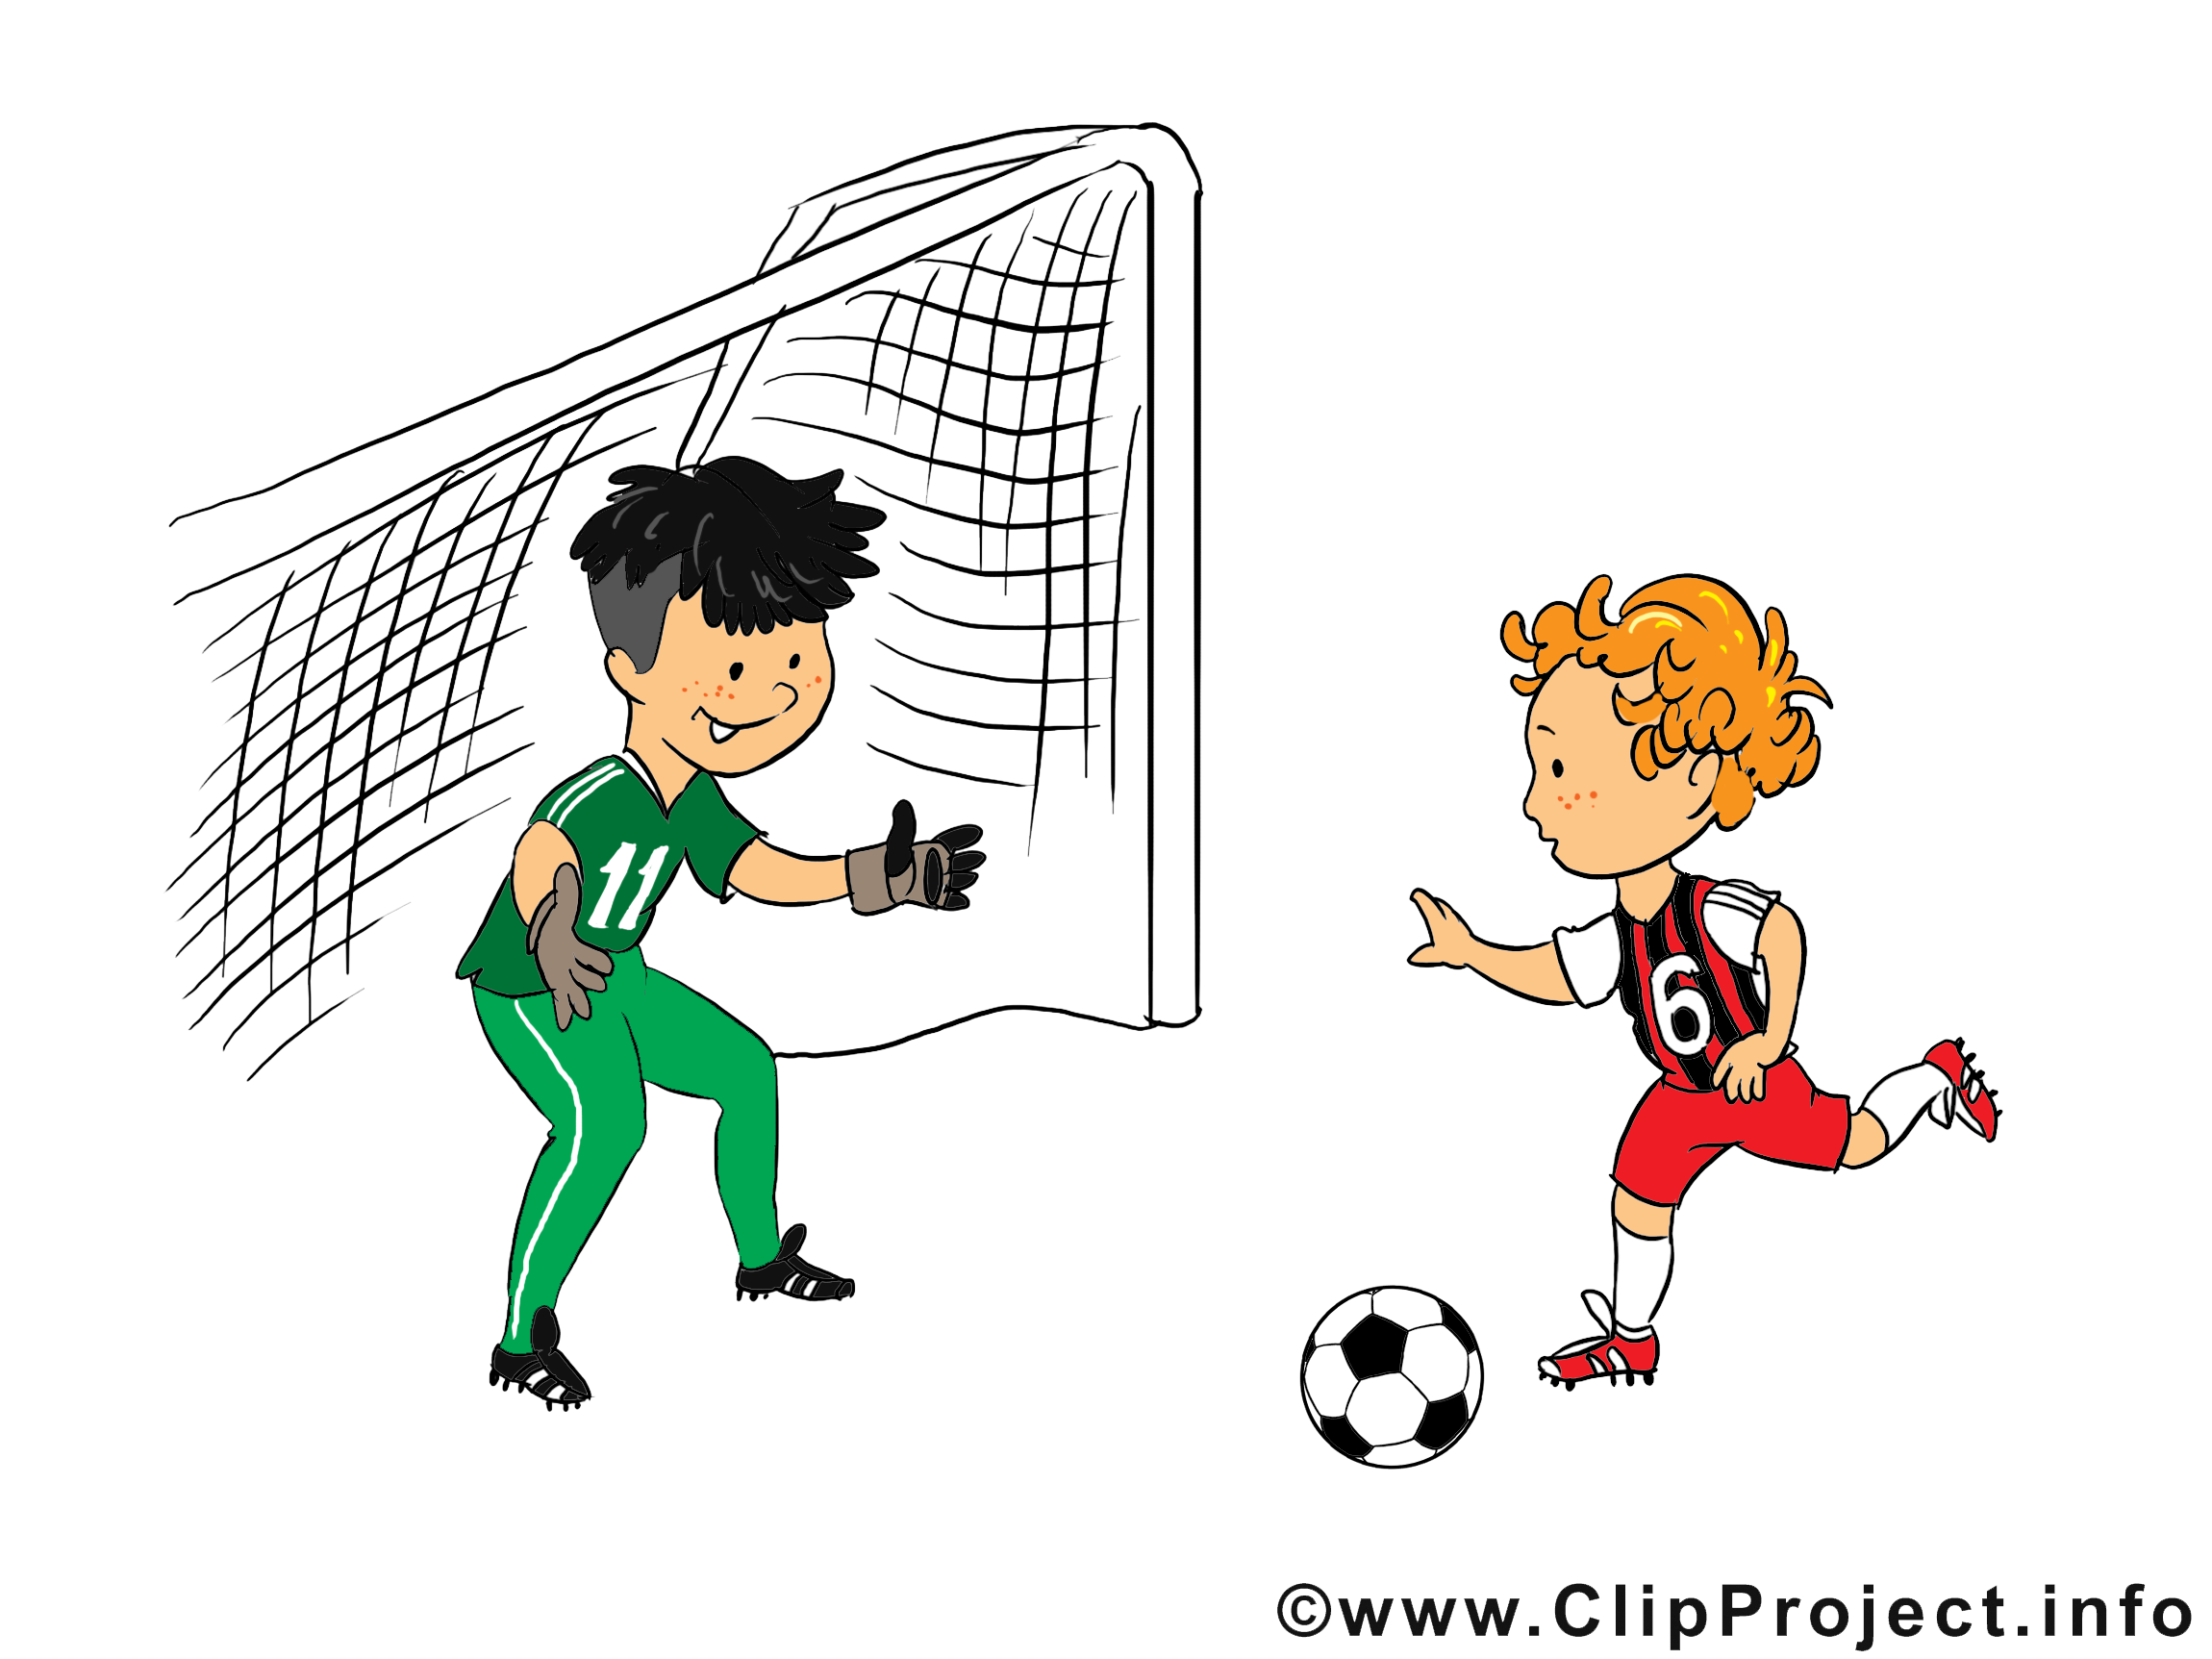 But image gratuite – Football clipart